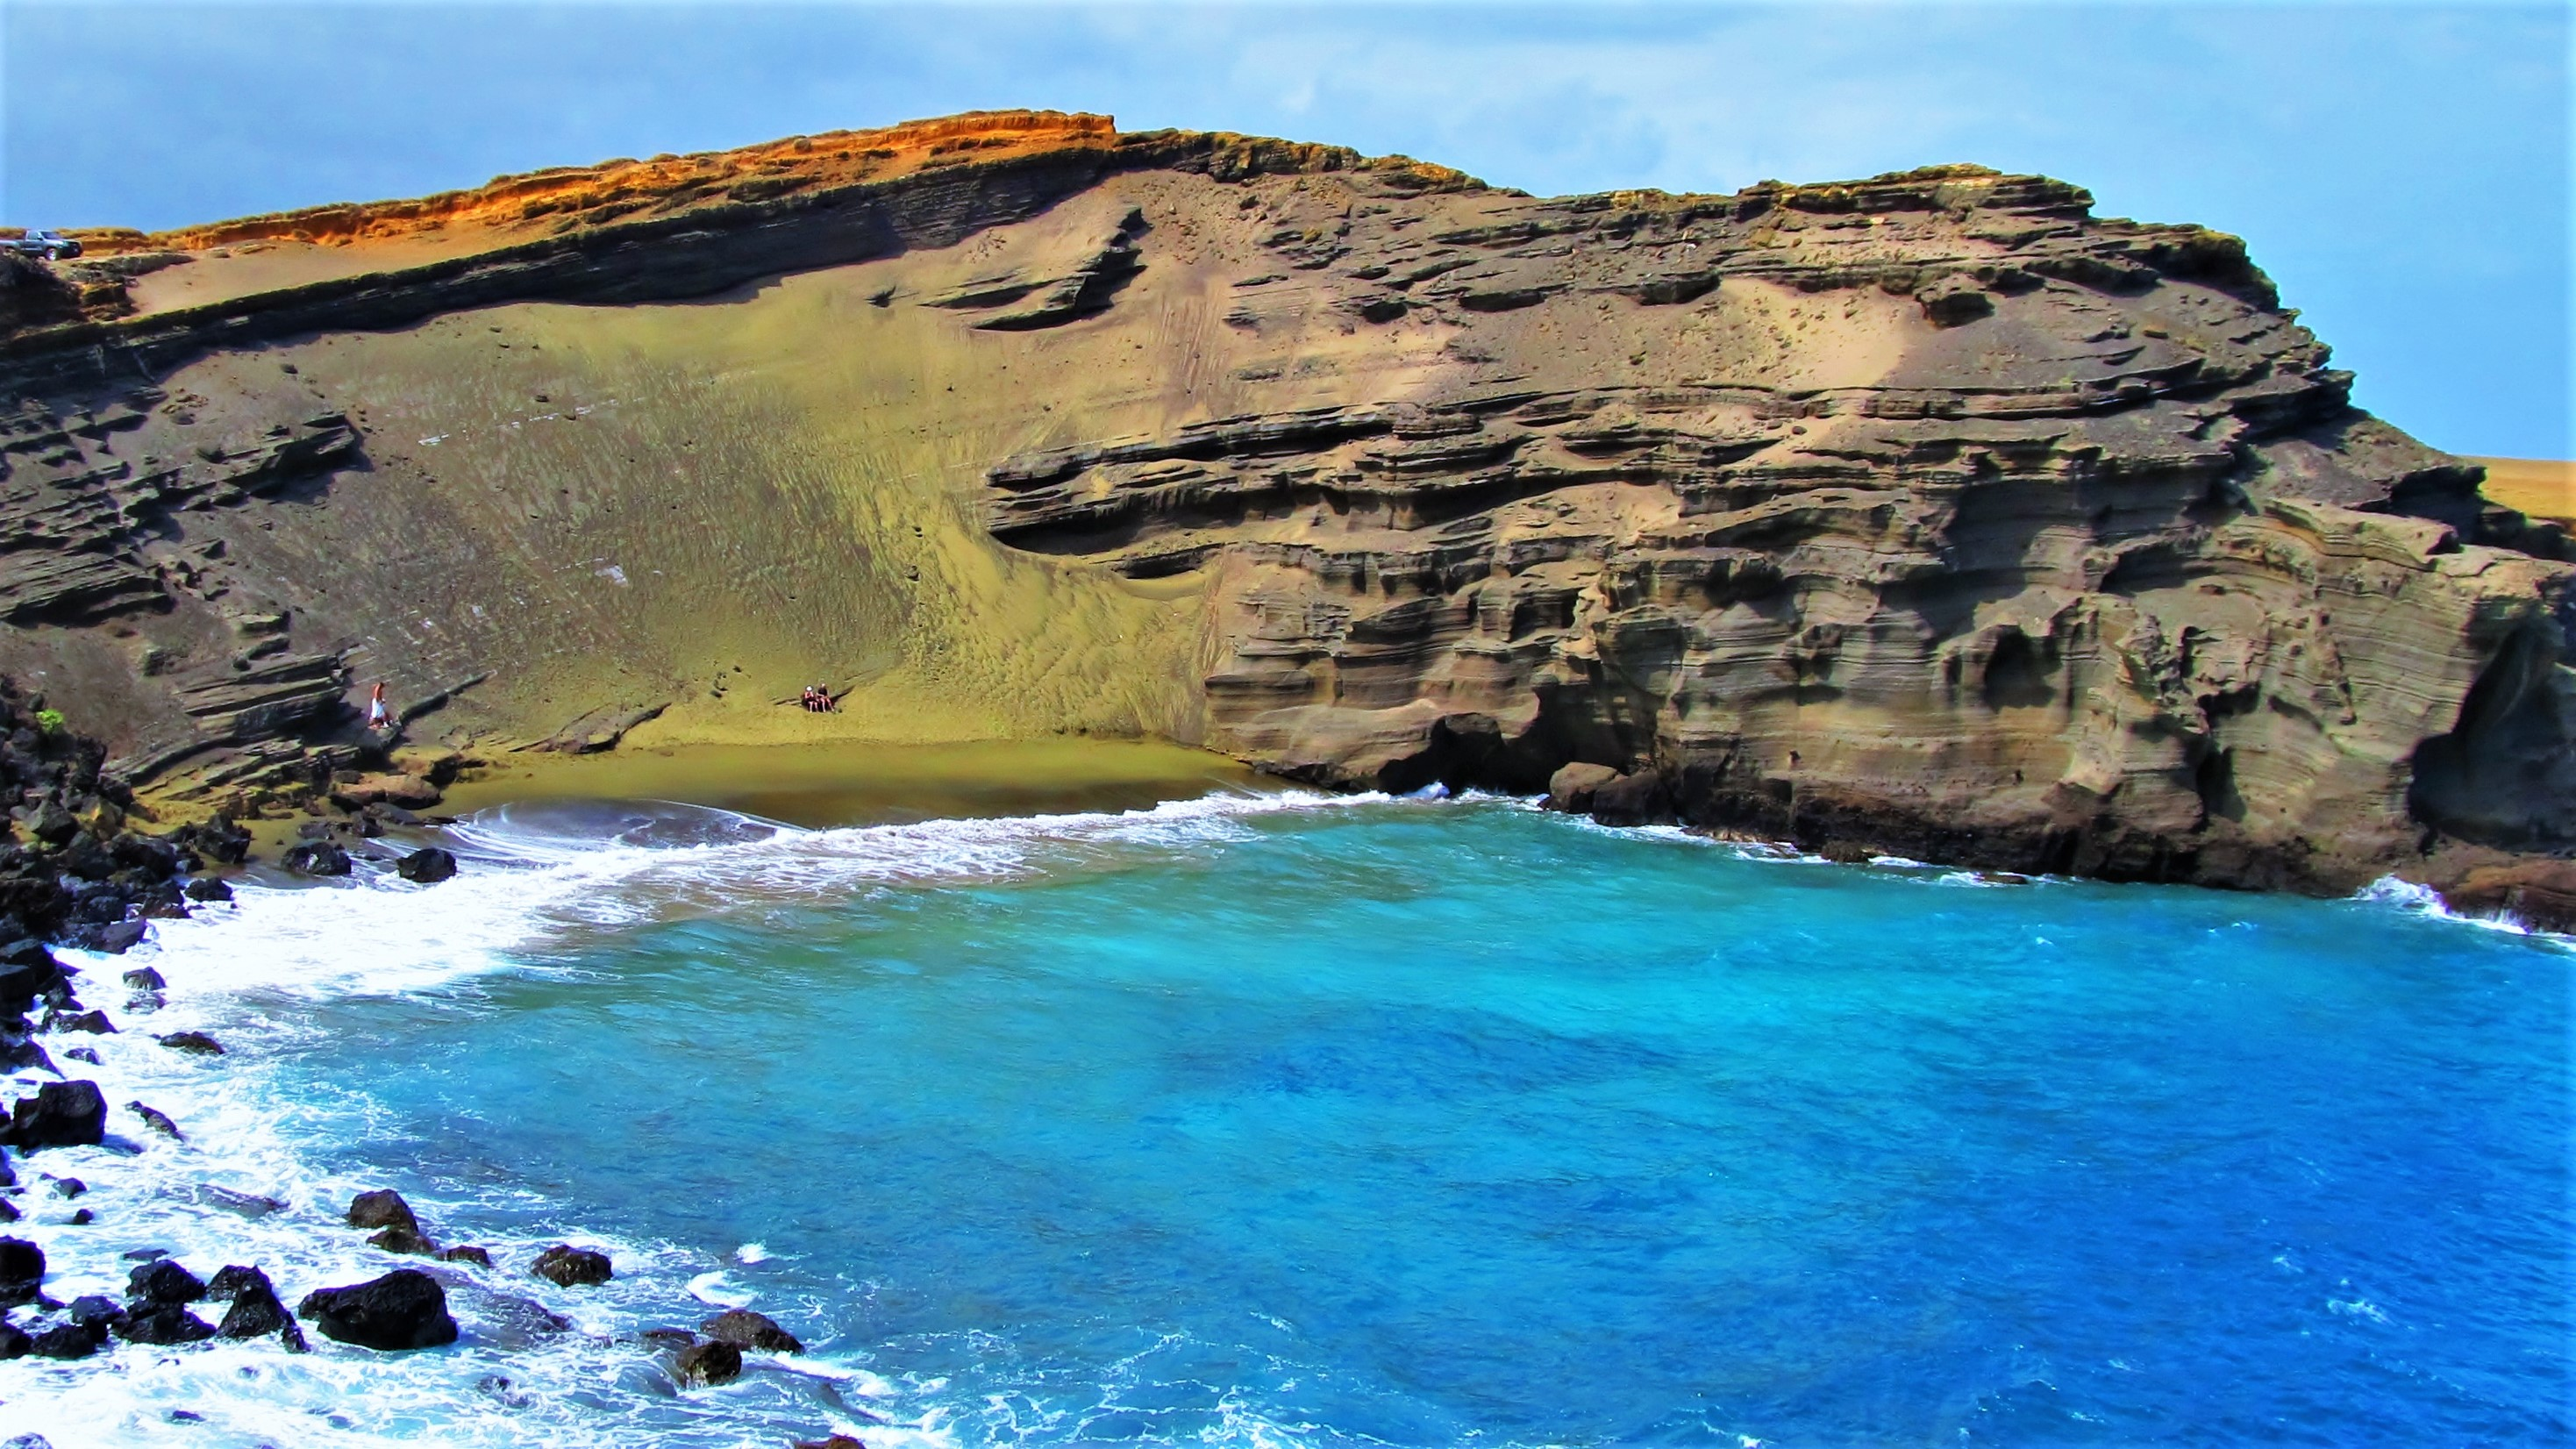 Papakolea Green Sand Beach - one of many unique Hawaii attractions